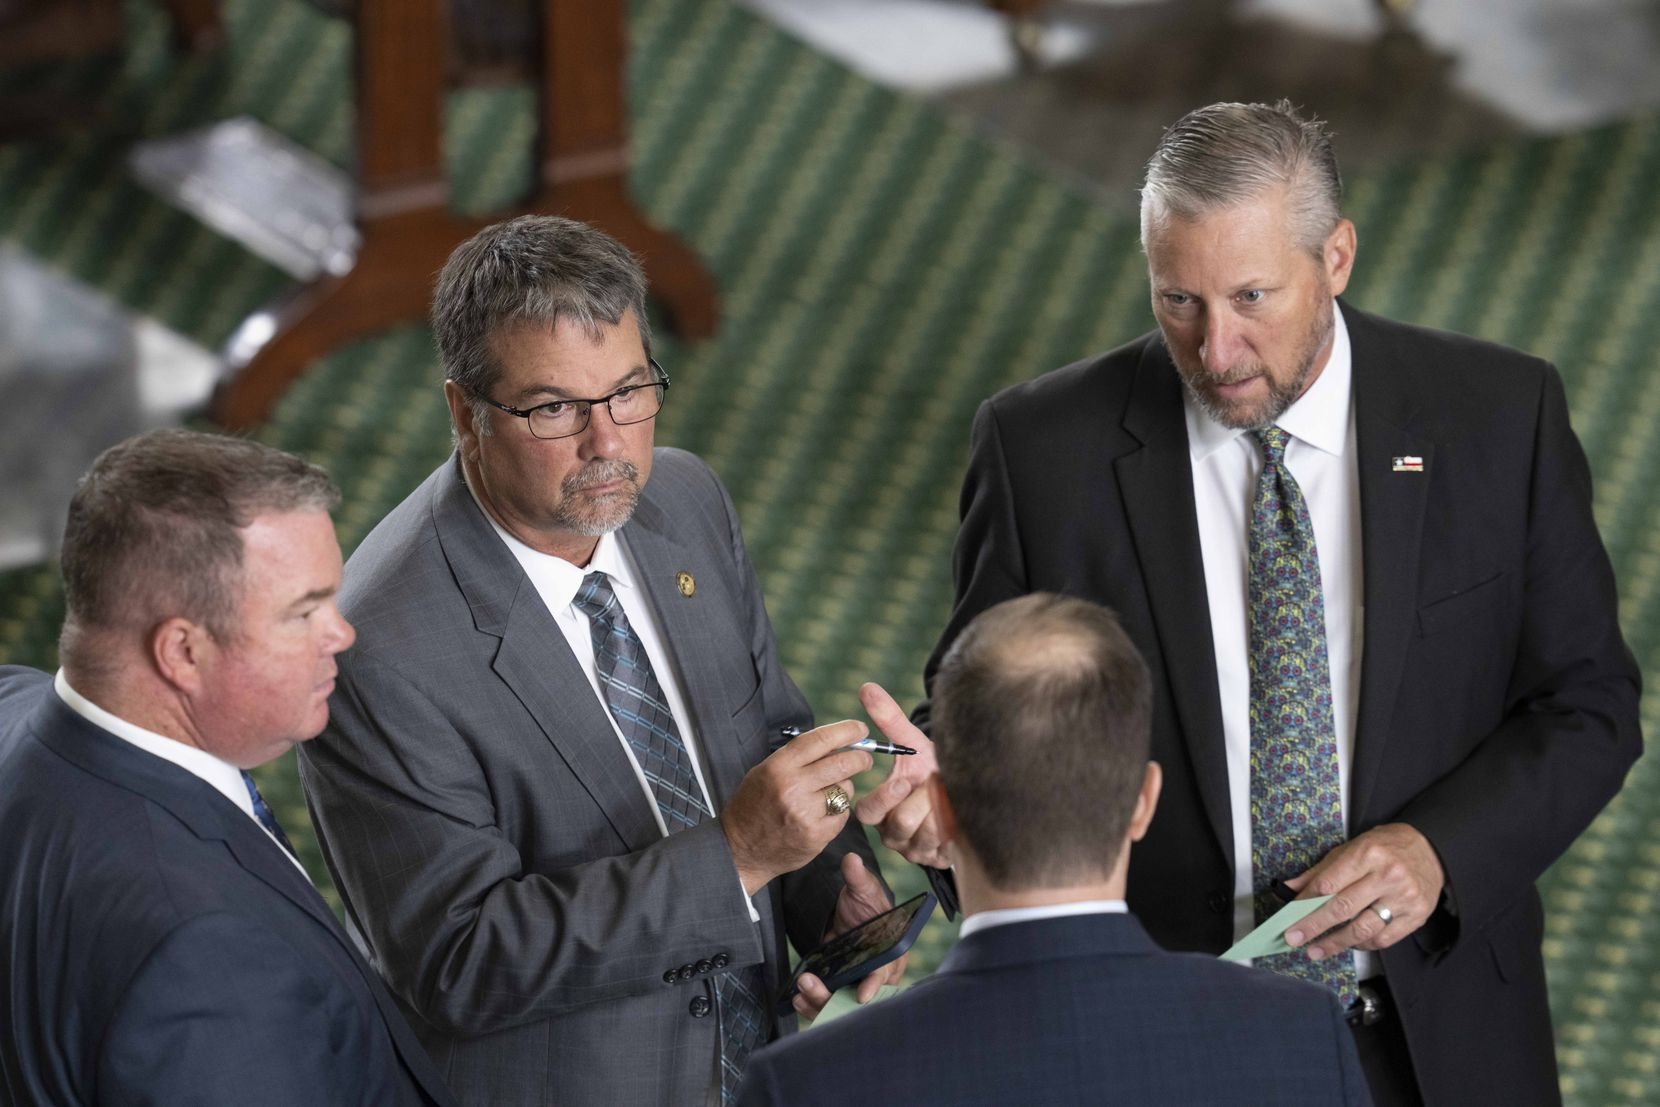 Sens. Charles Perry, R-Lubbock, (holding pen) and Drew Springer, R-Muenster, (right) talked with aides on the Senate floor Thursday.